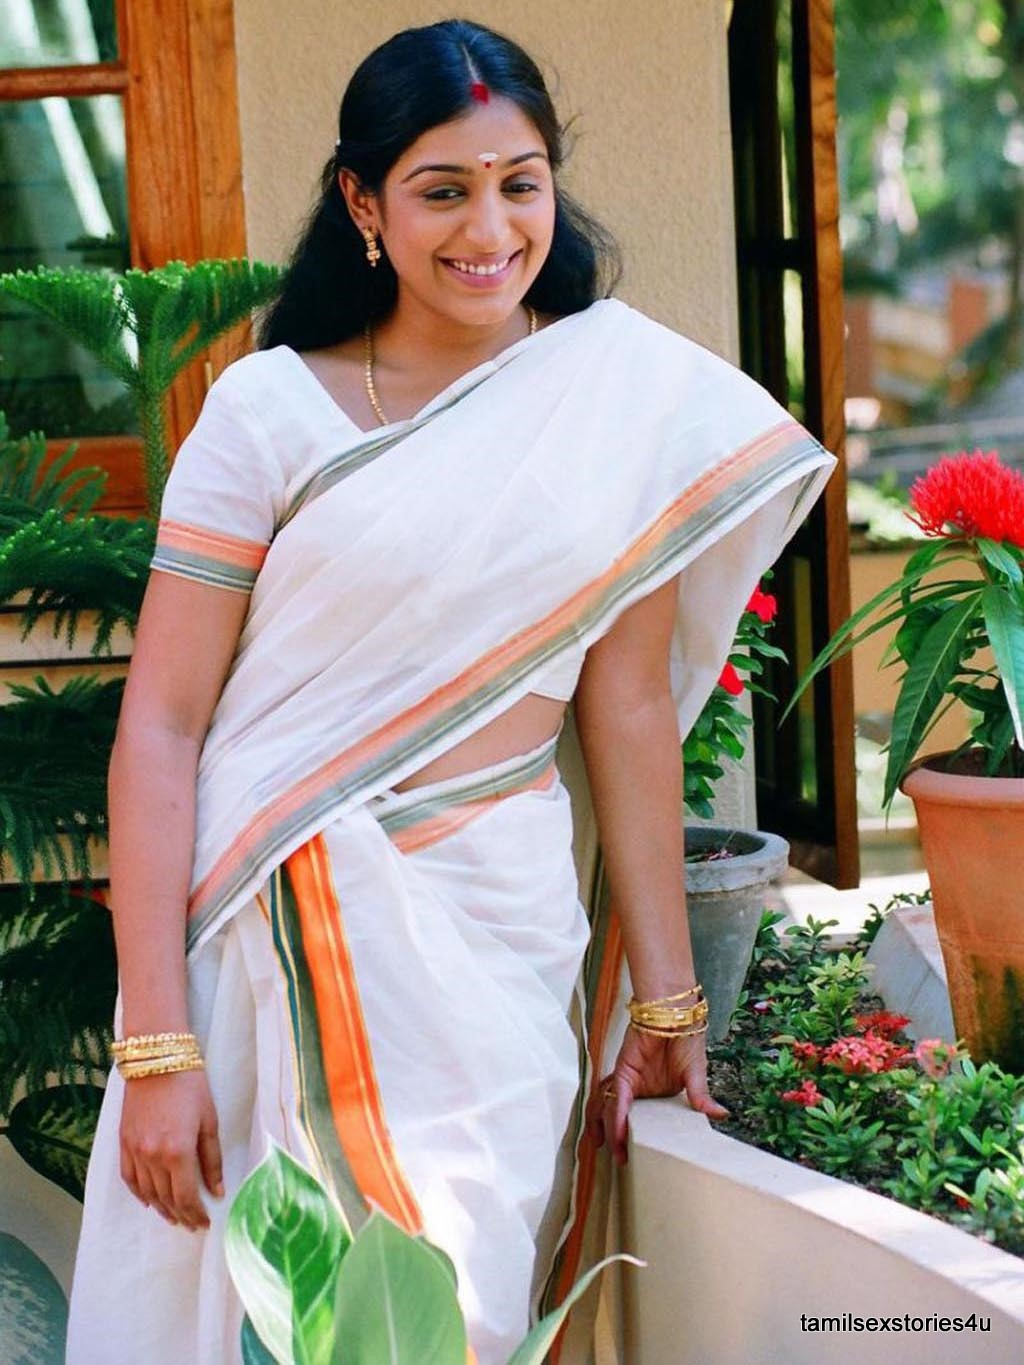 Mallu Actress Padmapriya In White Saree Suhruth Actressinsarees